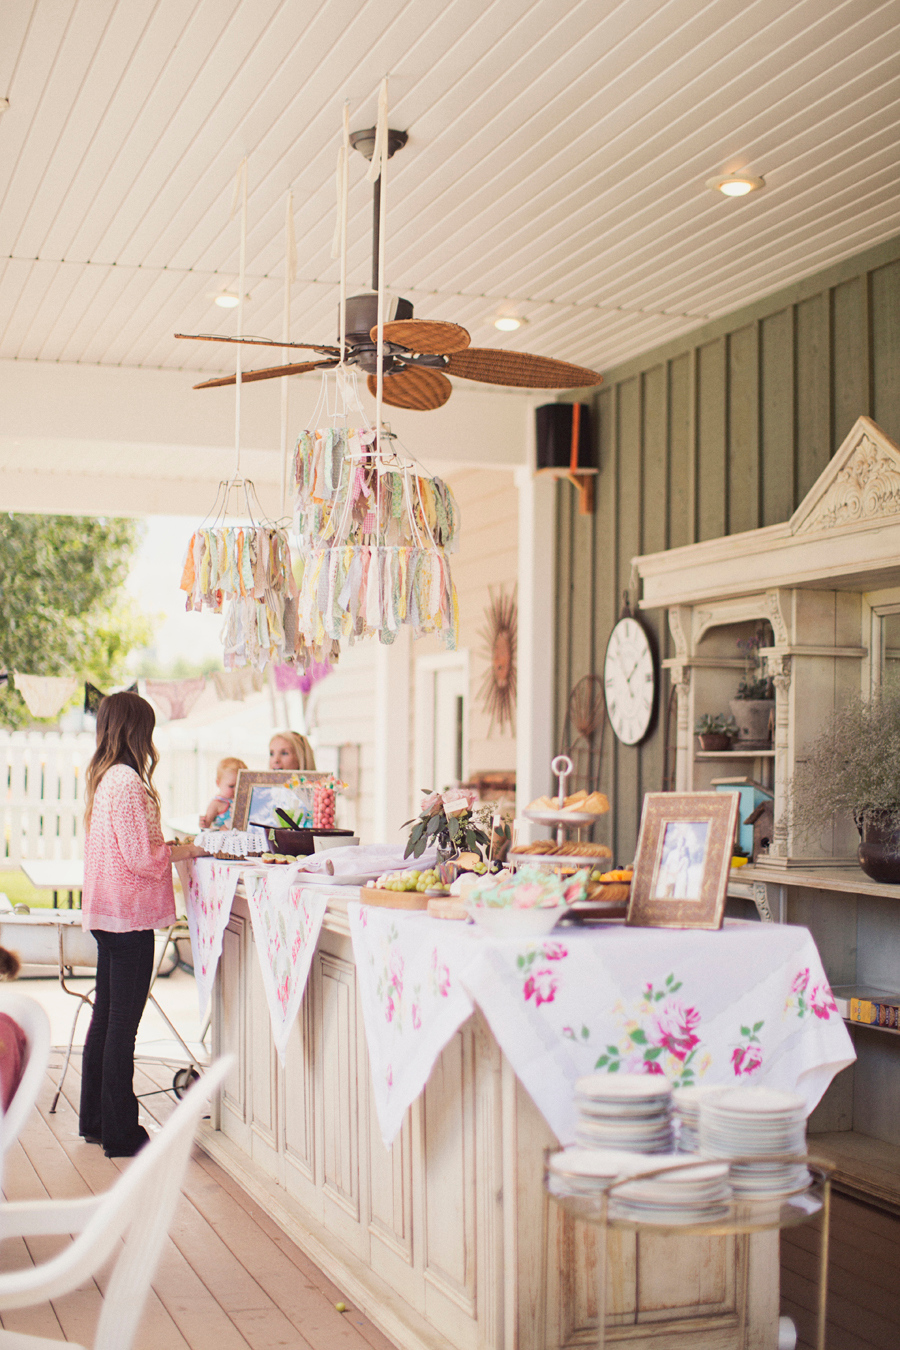 Wedding Gift Etiquette Shower And Wedding : Bridal Shower 101: Everything You Need To Know About Hosting ...